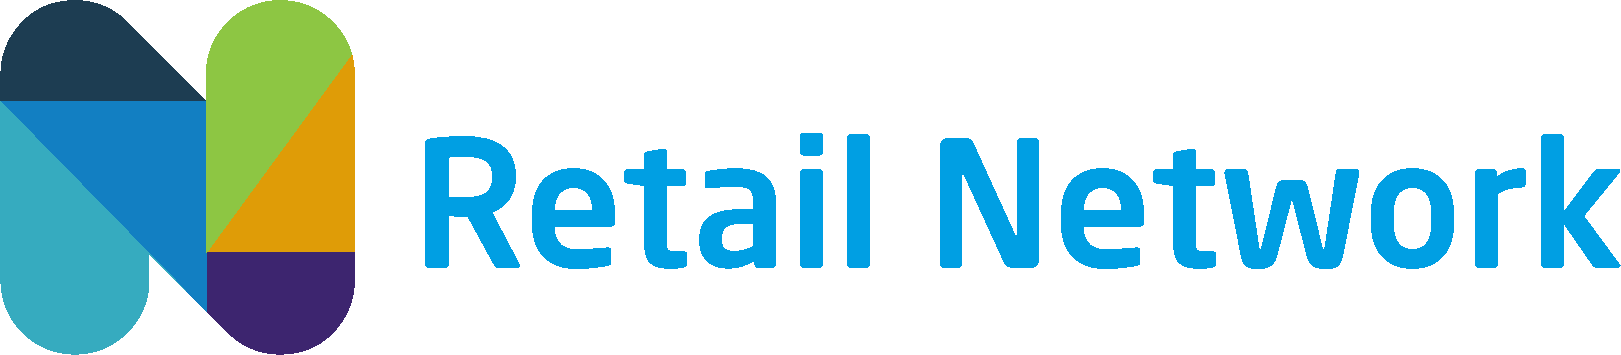 Nordic Retail Network